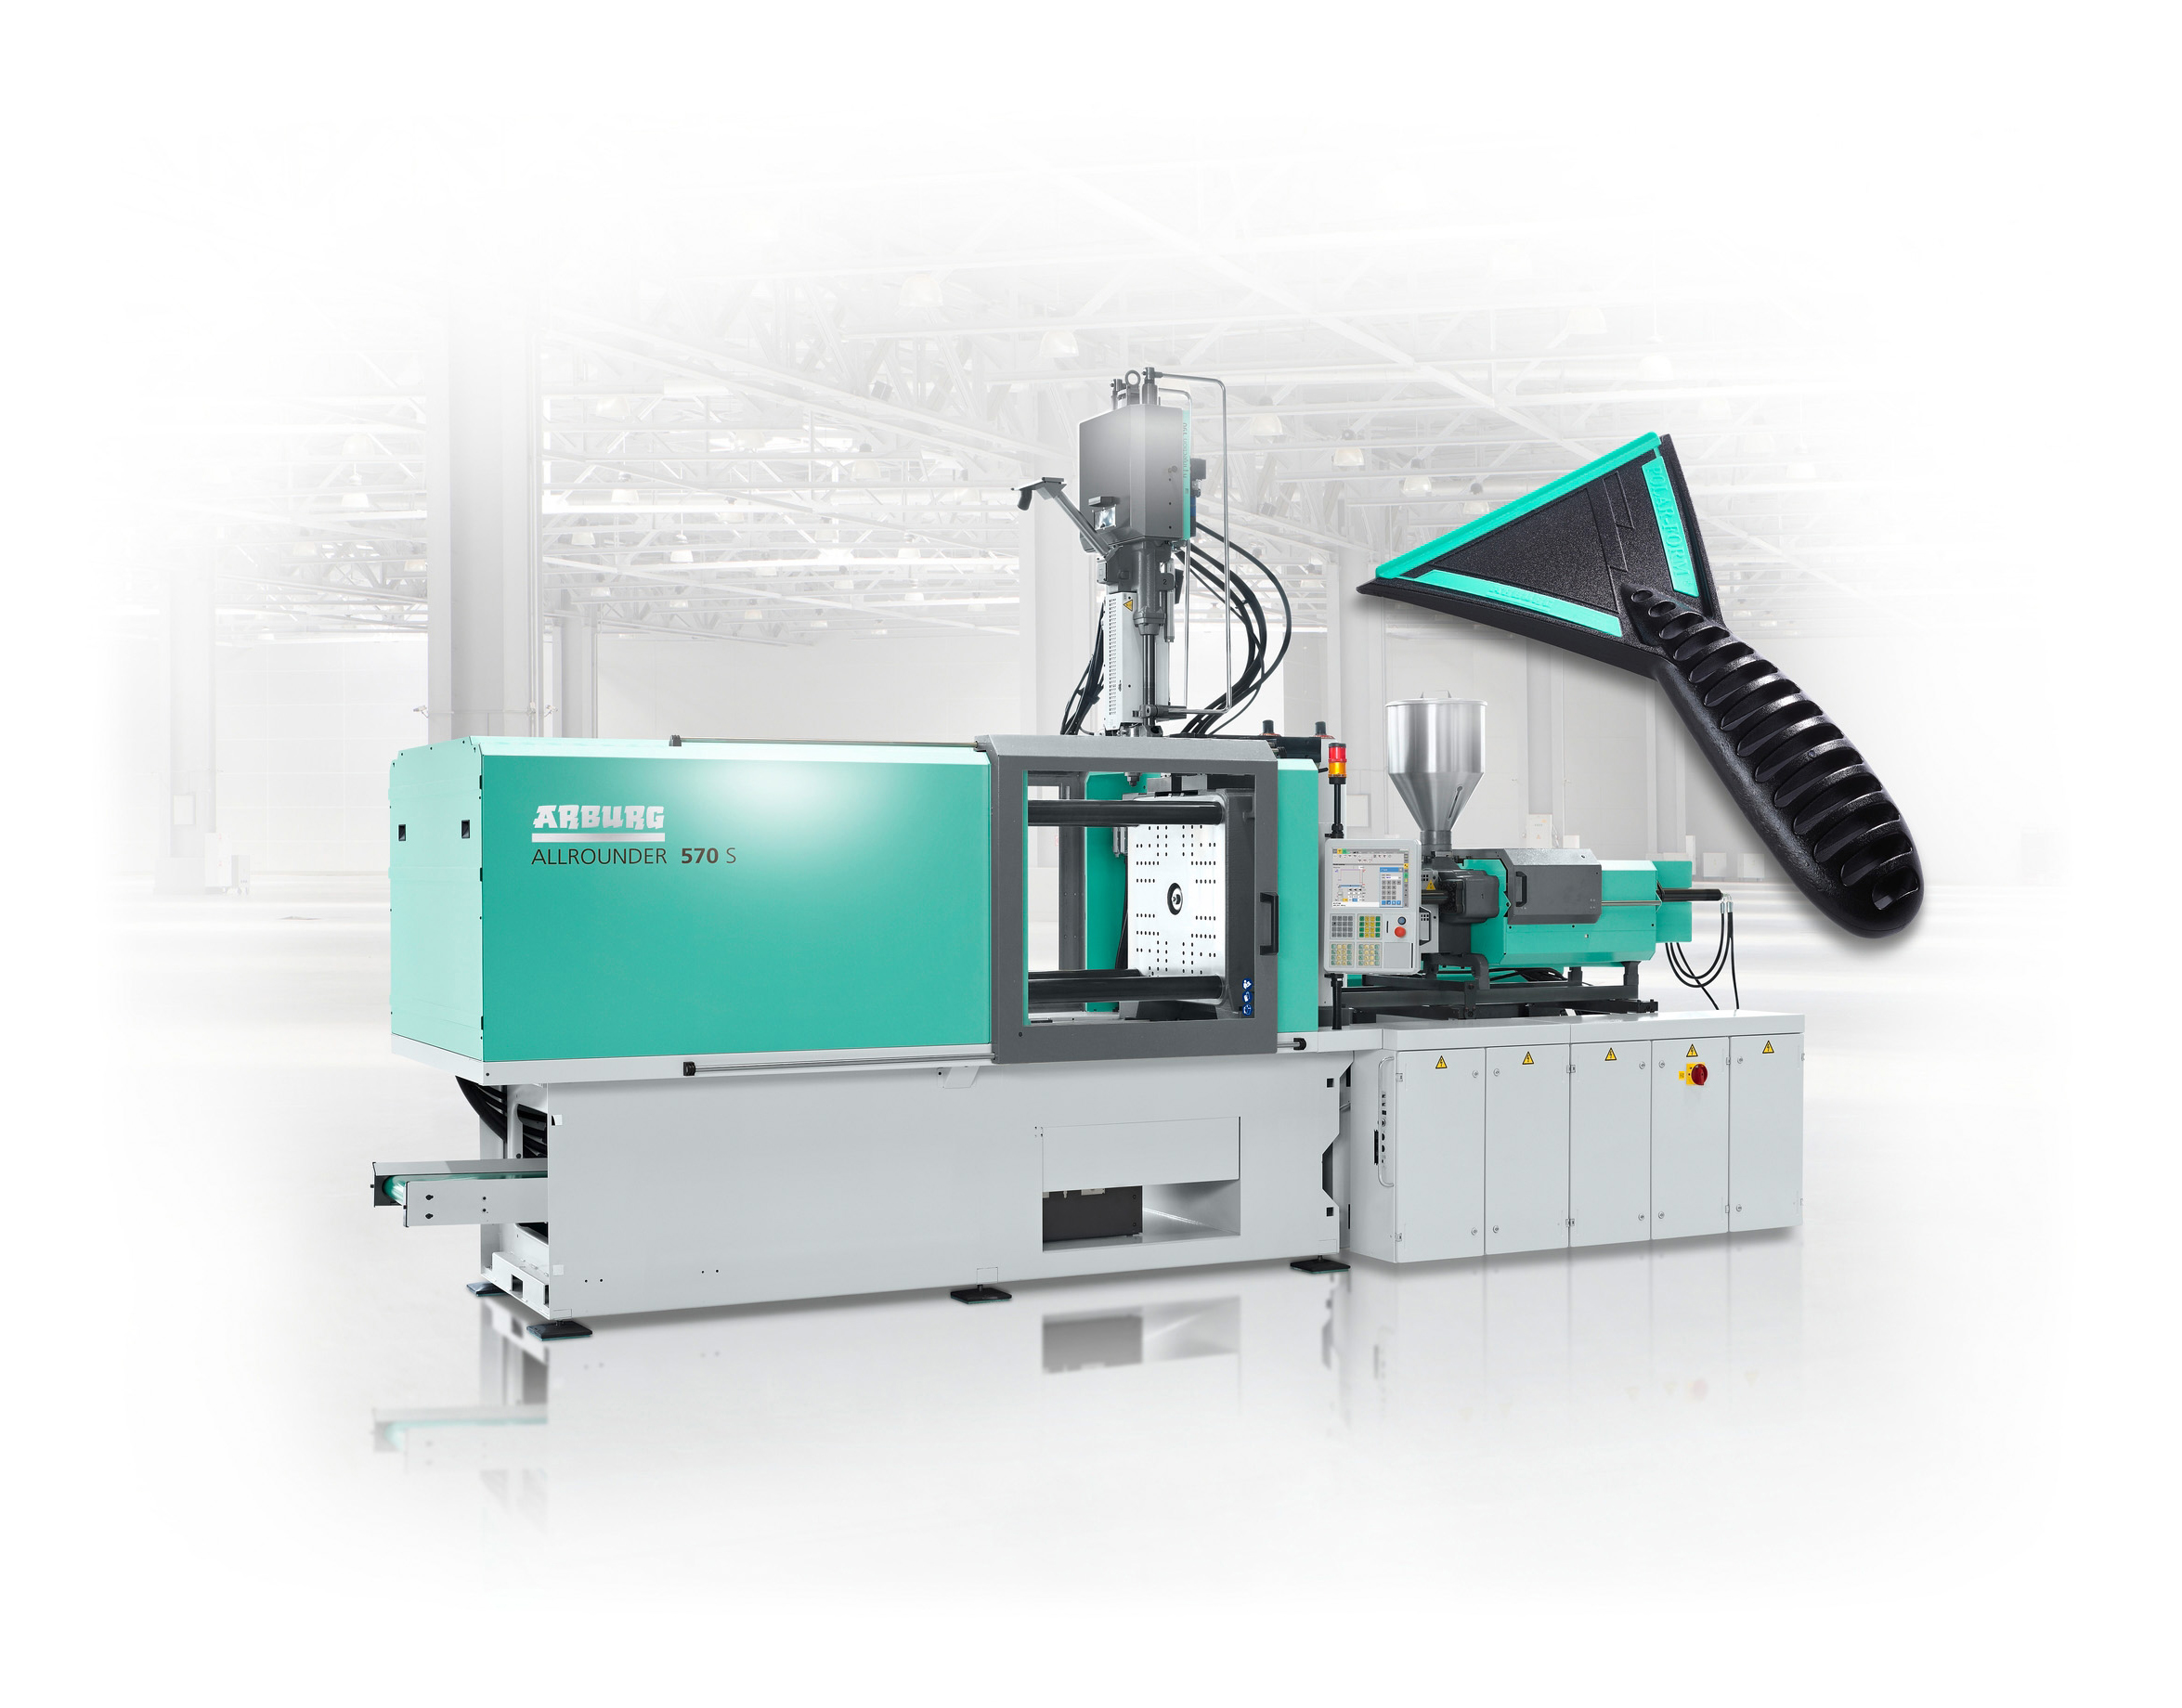 At Interplastica 2019 a hydraulic two-component Allrounder 570 S will produce ice scrapers from ABS and TPE live at the Arburg stand in hall 2.1 (Source: Arburg)